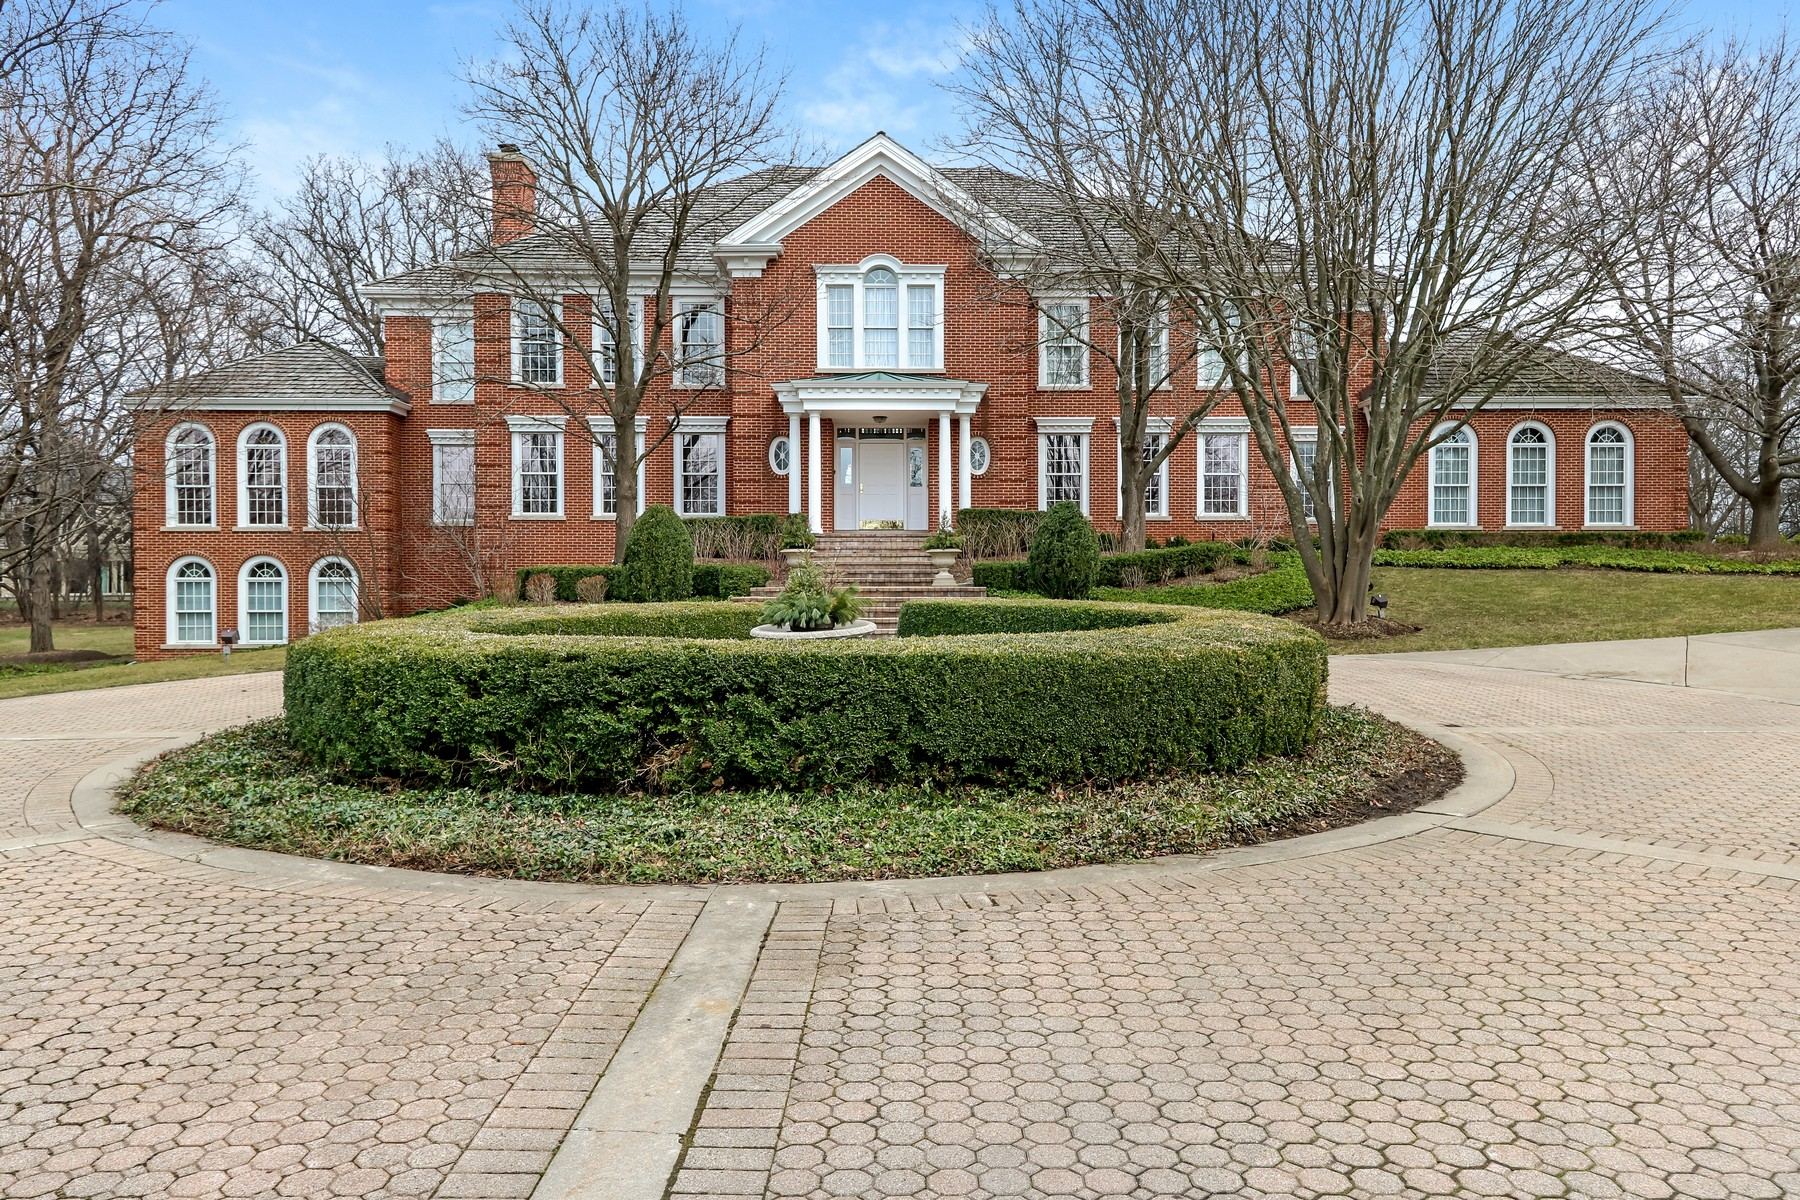 Single Family Home for Sale at Majestic Georgian Home 54 Stratham Circle North Barrington, 60010 United States